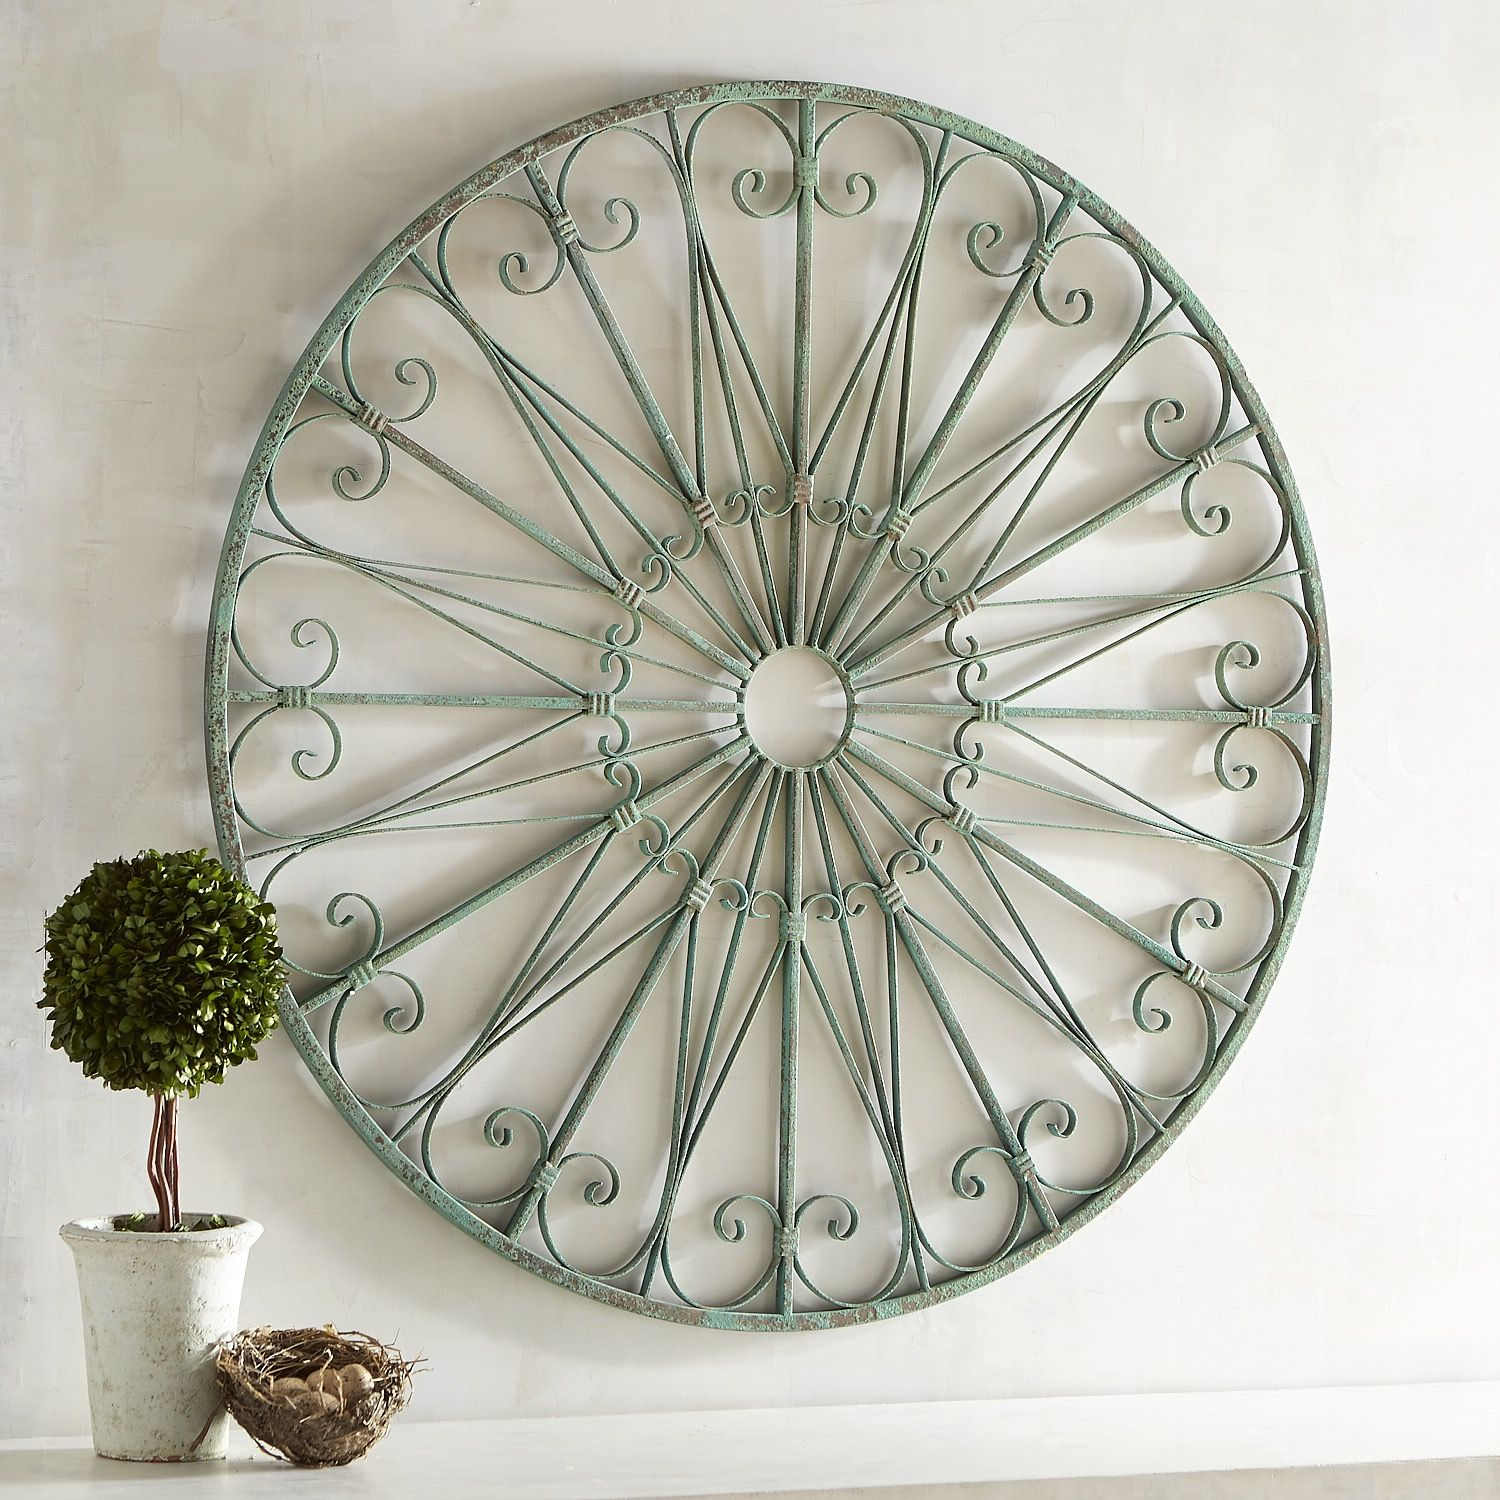 Scrolled Iron Round Wall Decor Turquoise